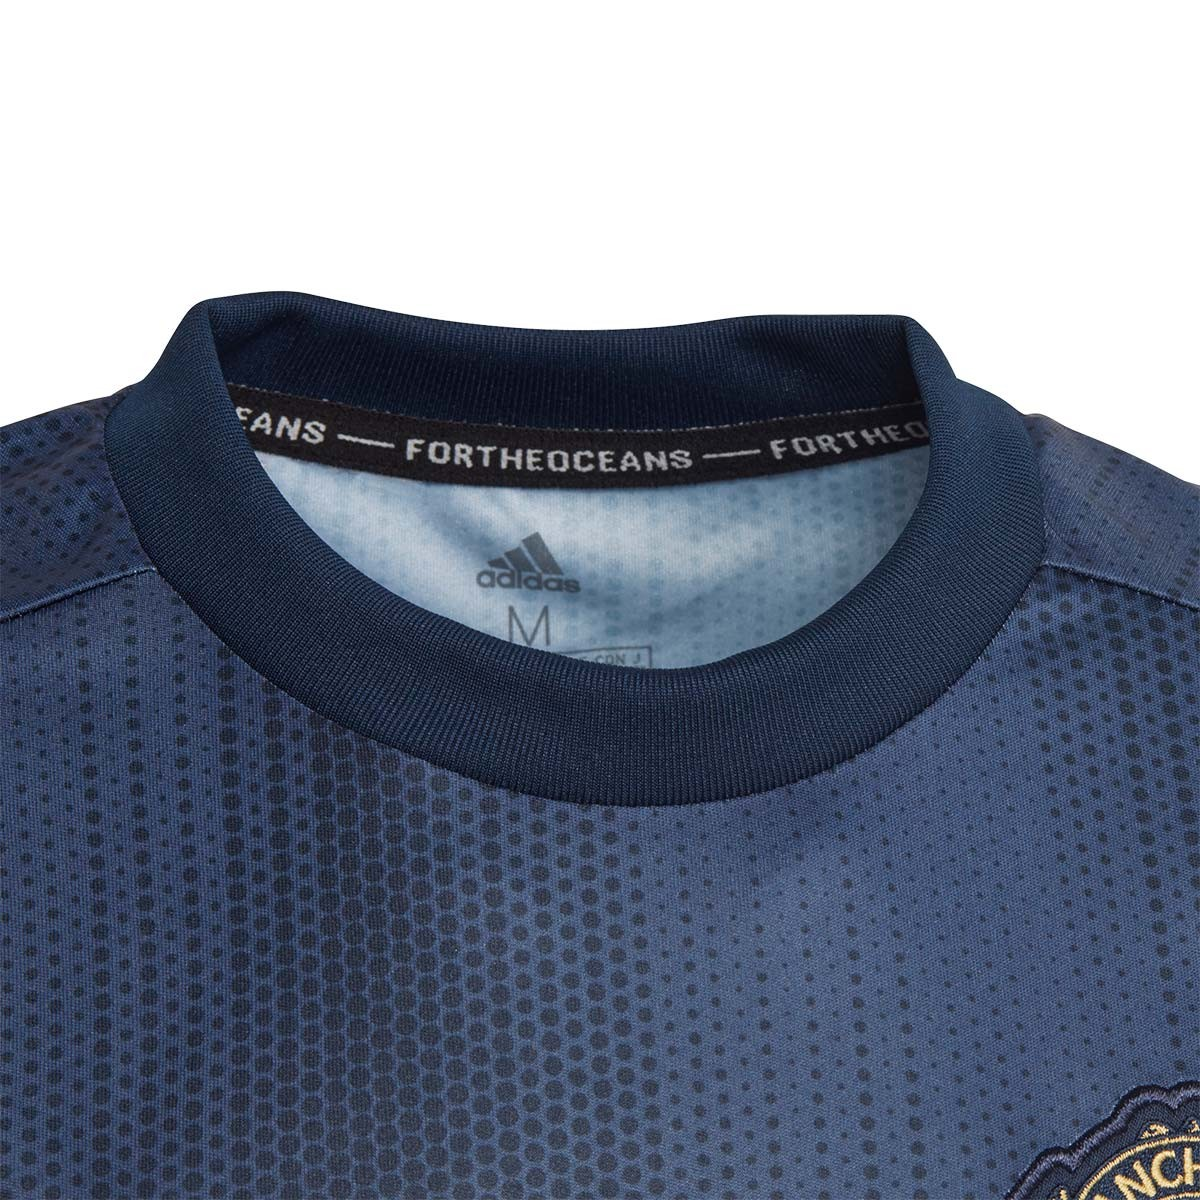 buy online 9a0c0 f13f5 Camiseta Manchester United FC Tercera Equipación 2018-2019 Niño Collegiate  navy-Night navy-Matte gold